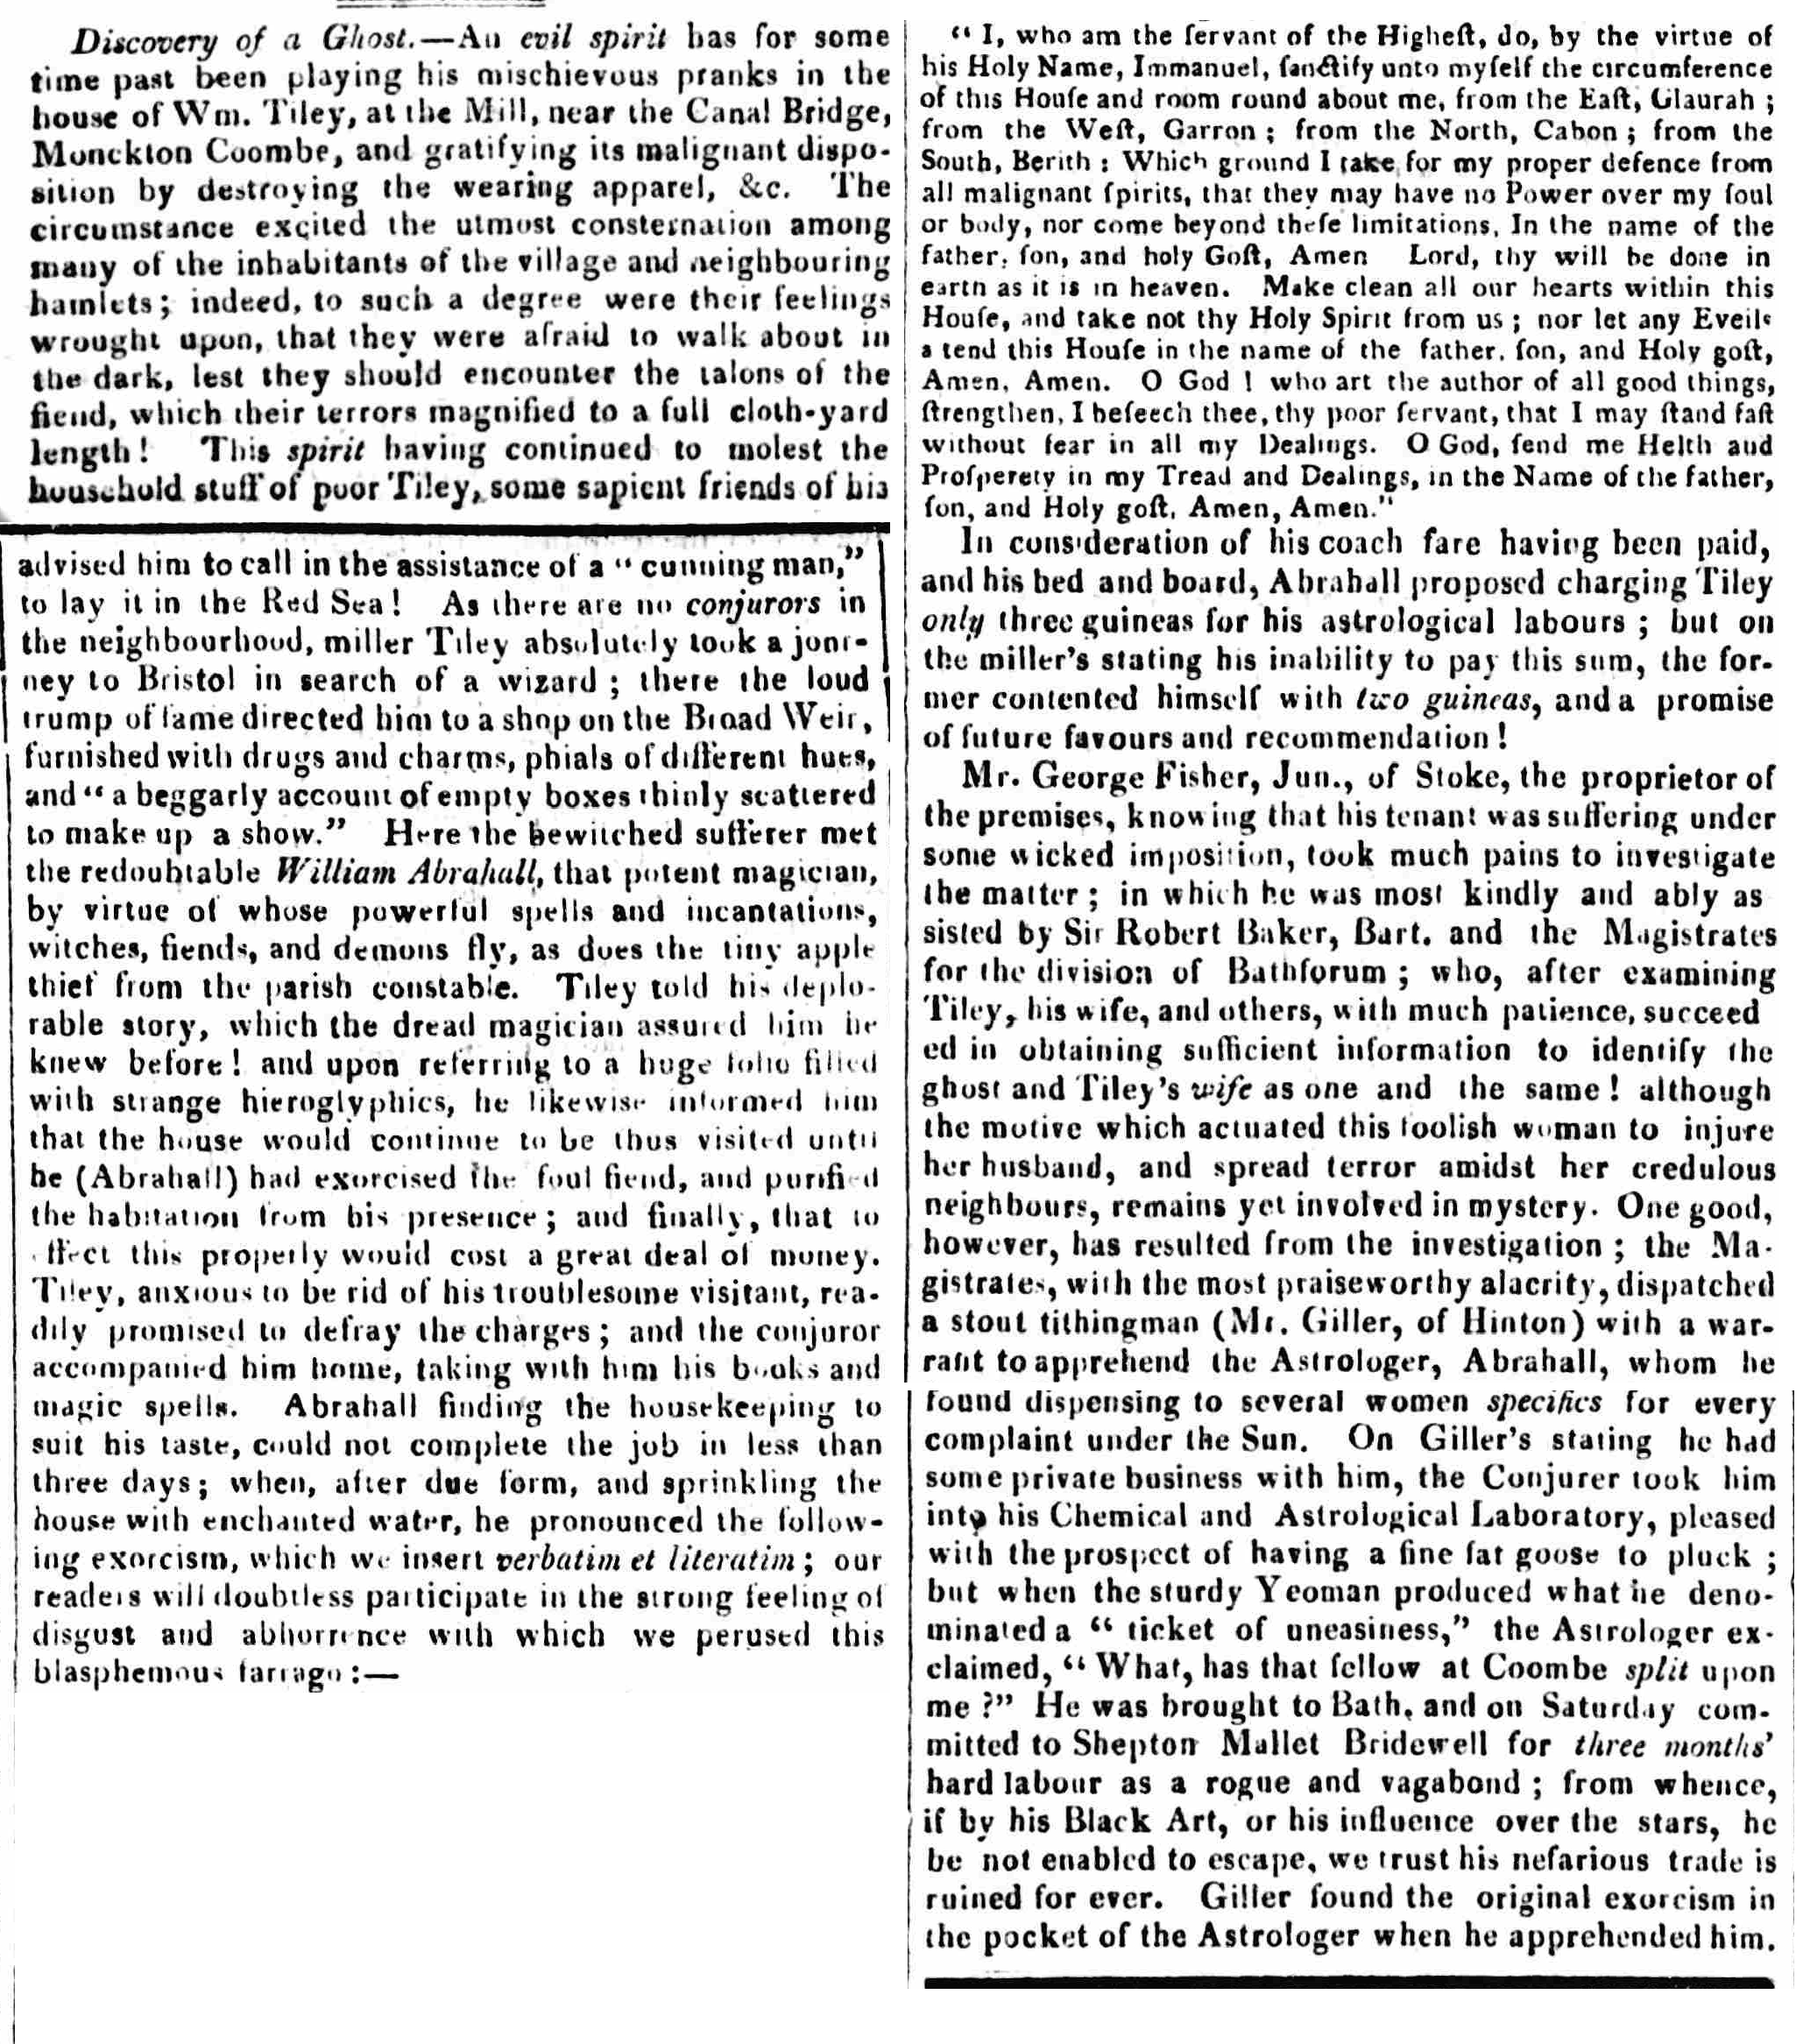 Article from 1822 about a haunting and a Cunning-Man